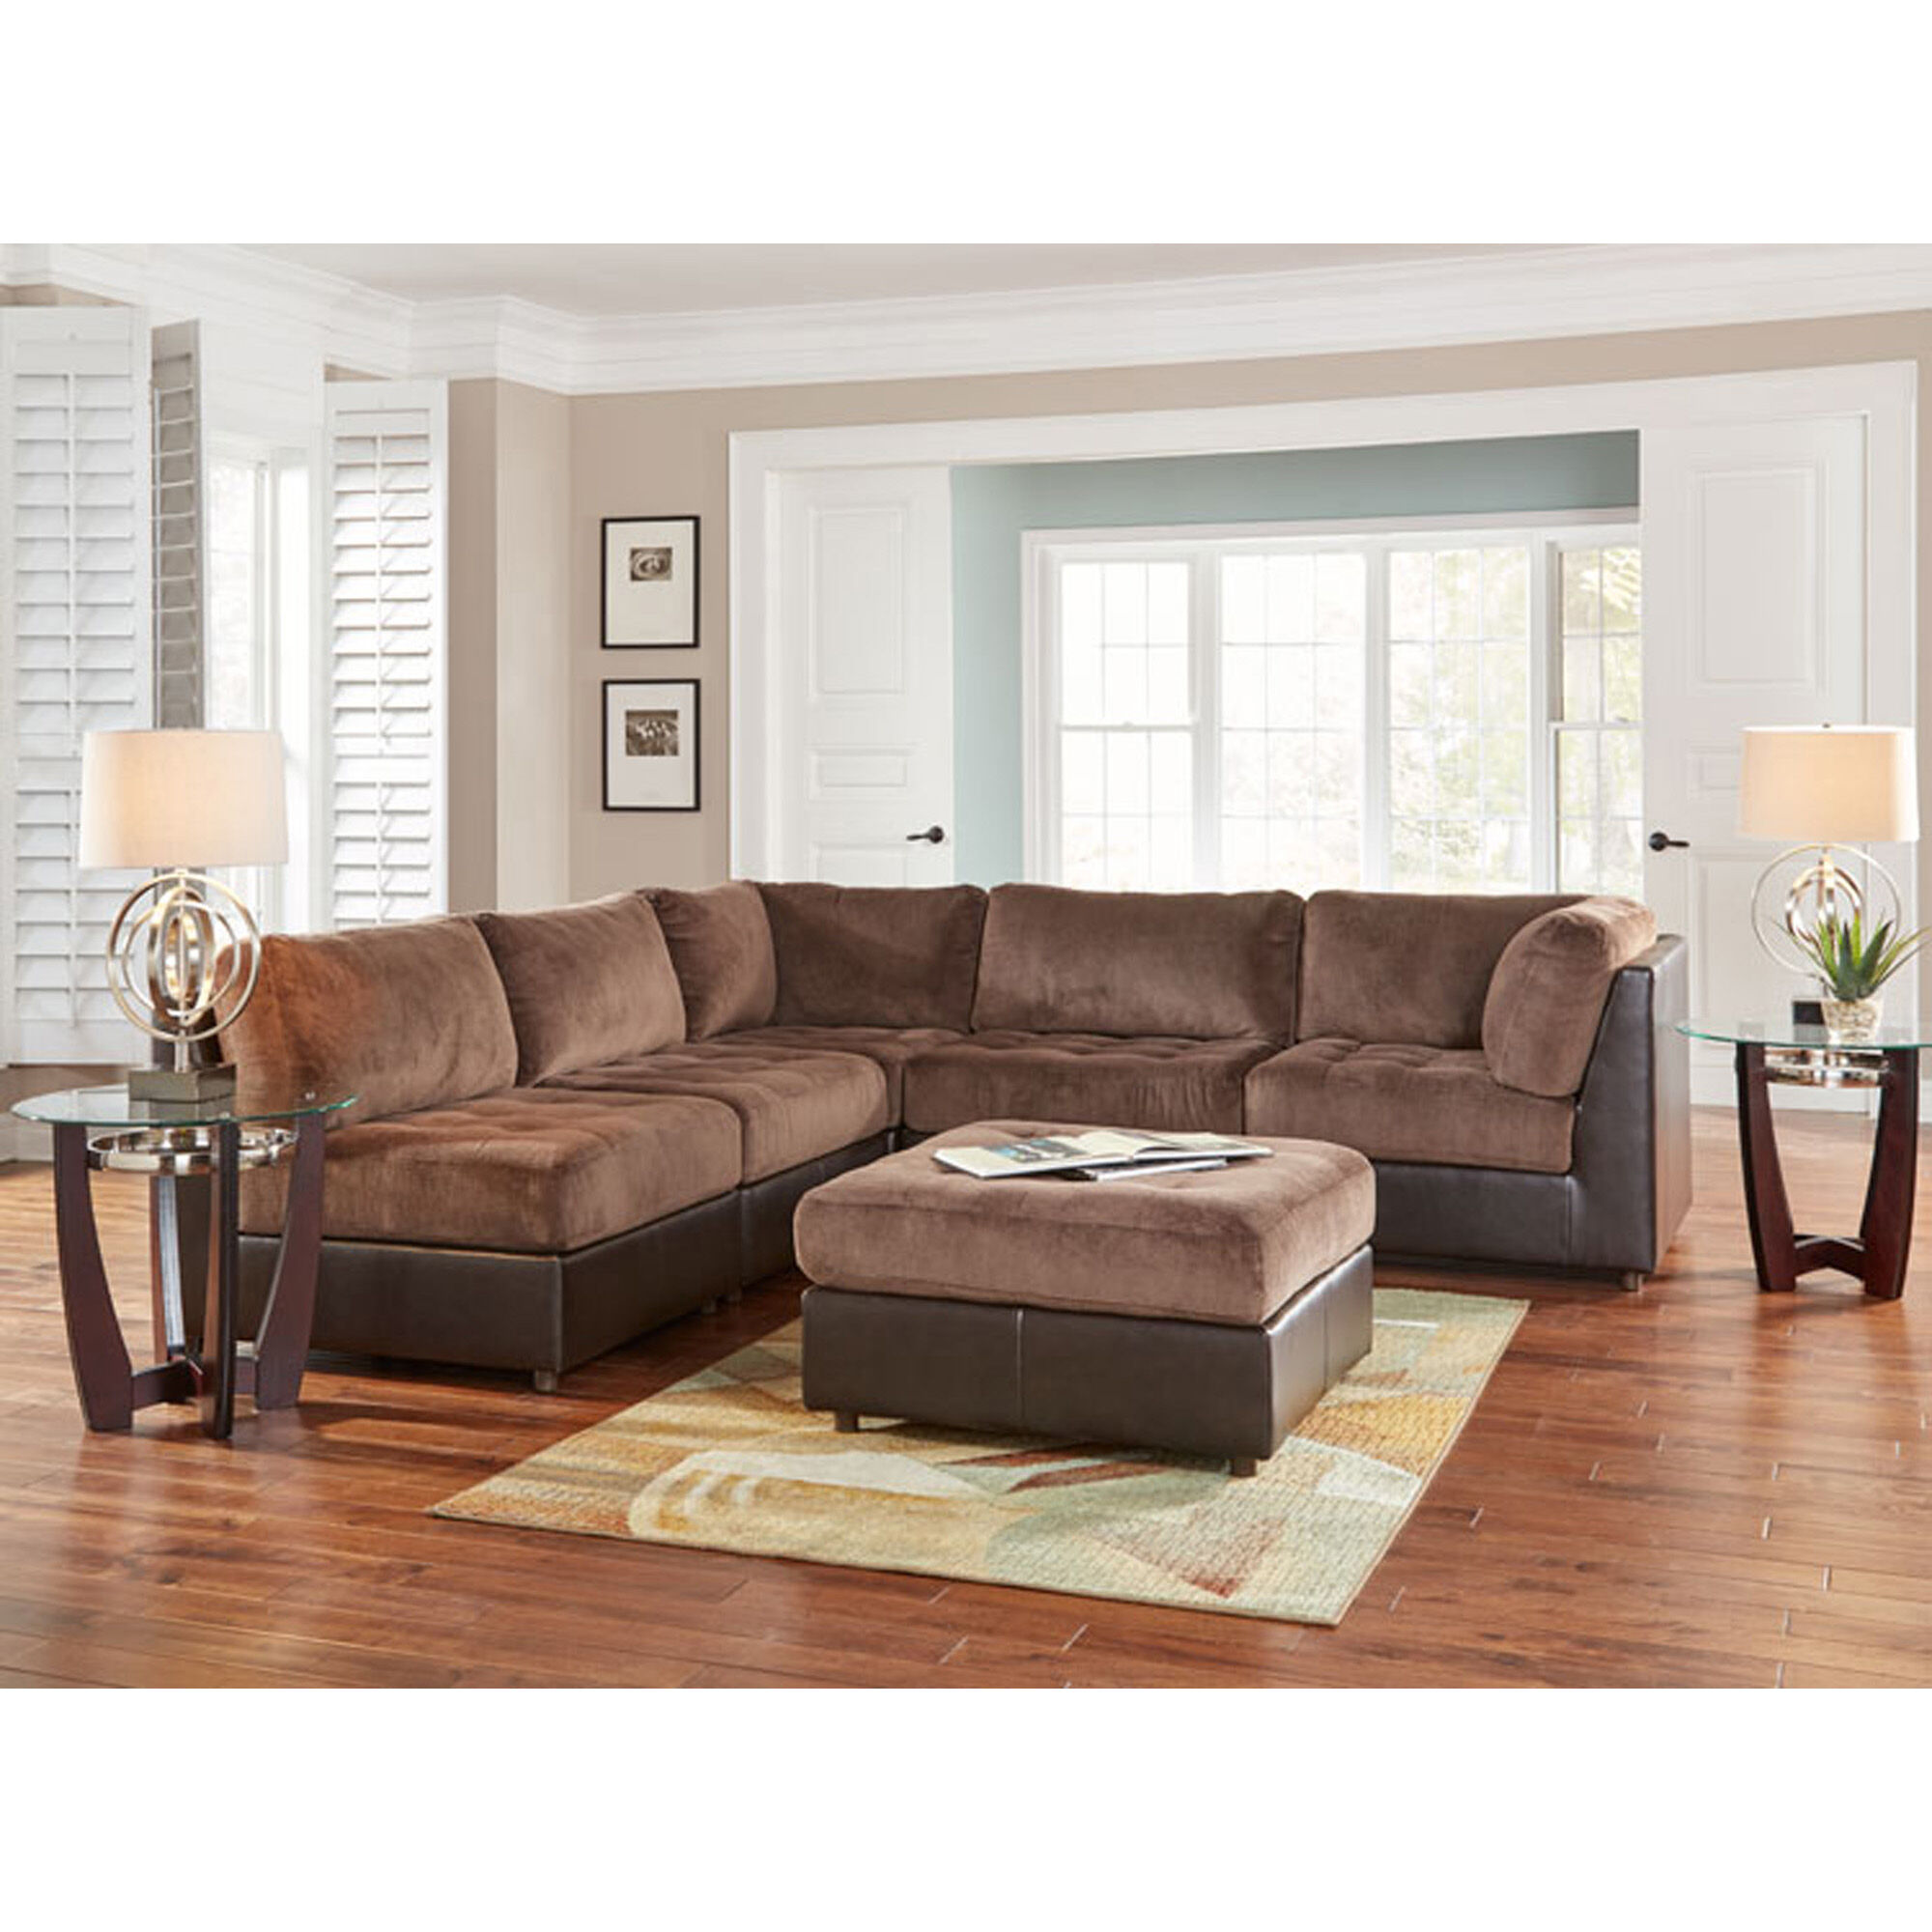 Contemporary furniture living room sets Front Room 10piece Hennessy Living Room Collection Aarons Rent To Own Living Room Furniture Aarons